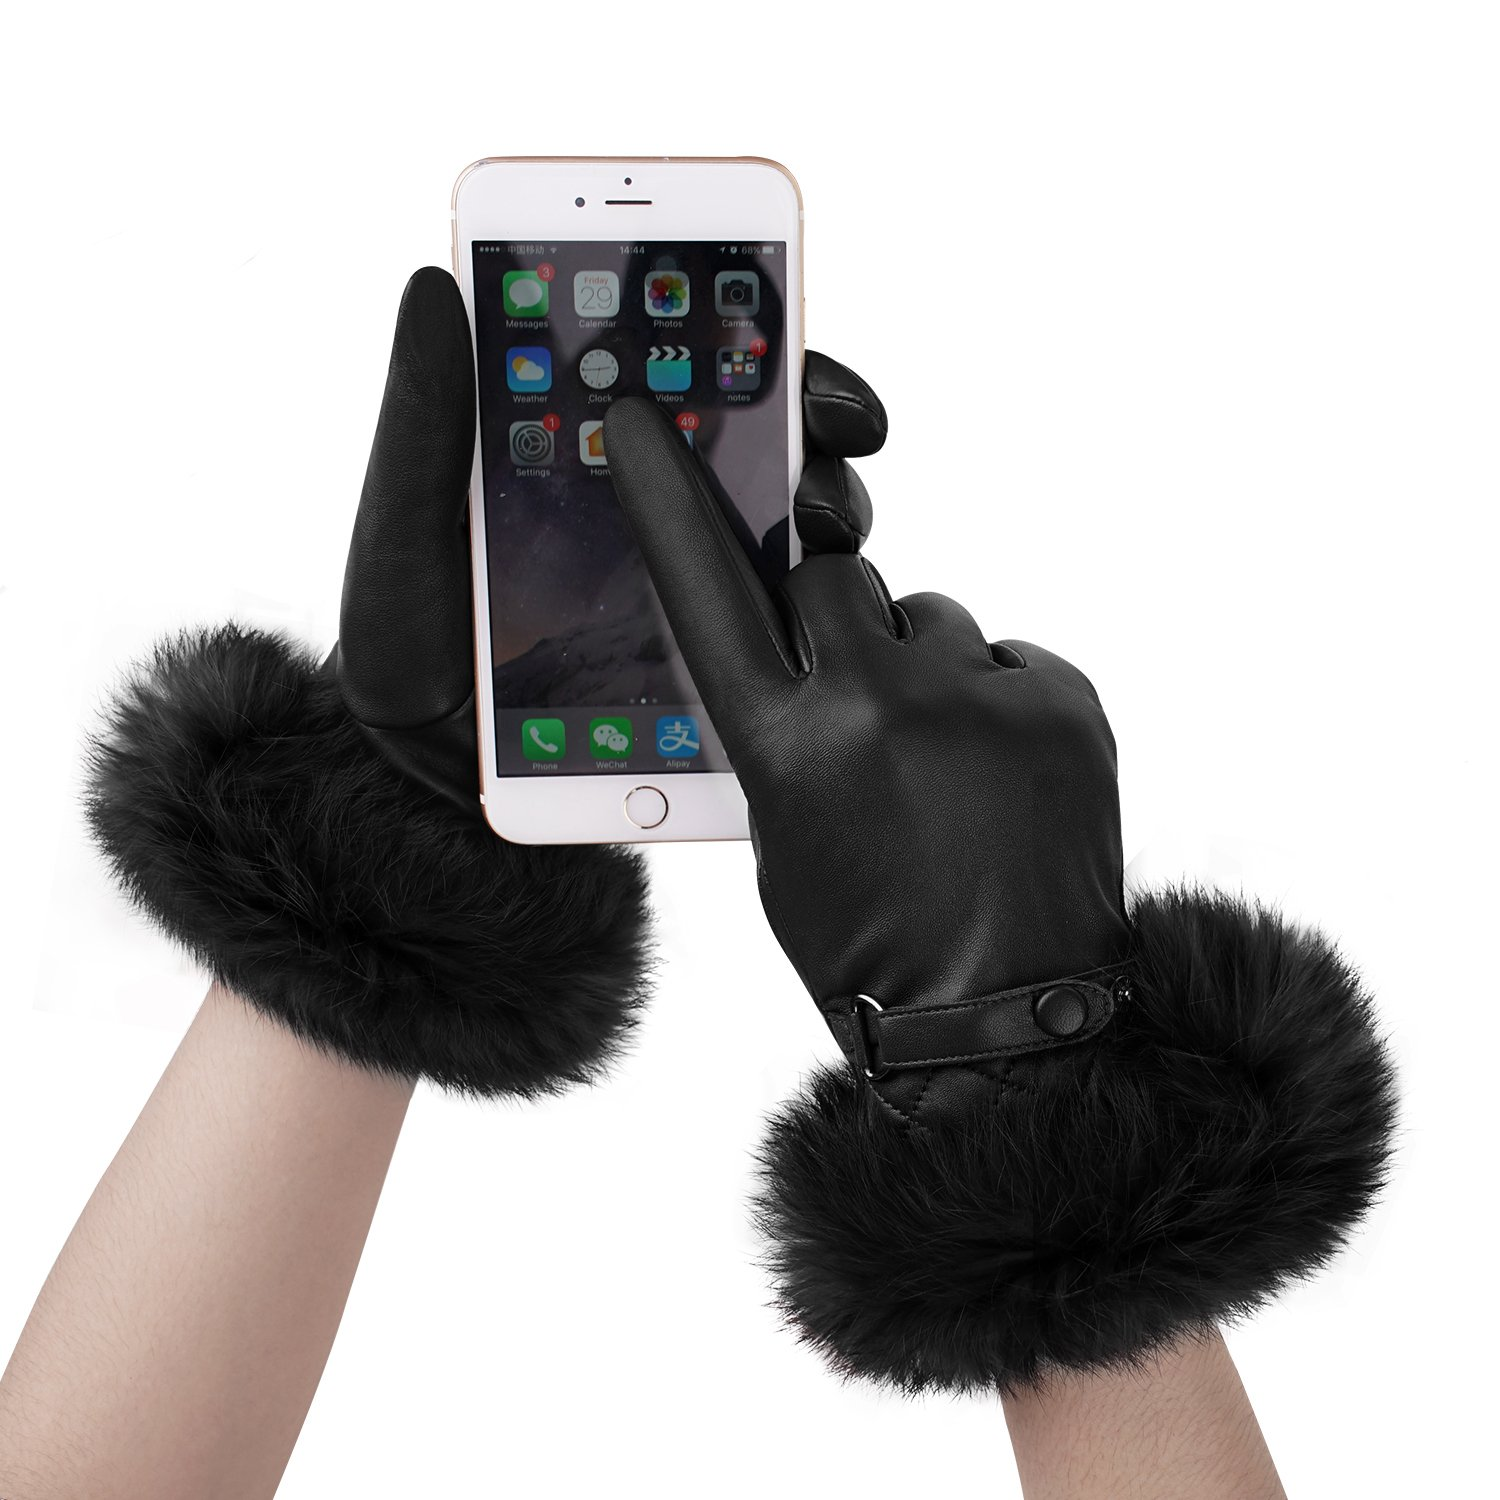 GSG Womens Luxury Italian Genuine Nappa Leather Gloves Fashion Fur Trim Full Palm Touchscreen Winter Warm Gloves Black 8.5 by GSG (Image #2)